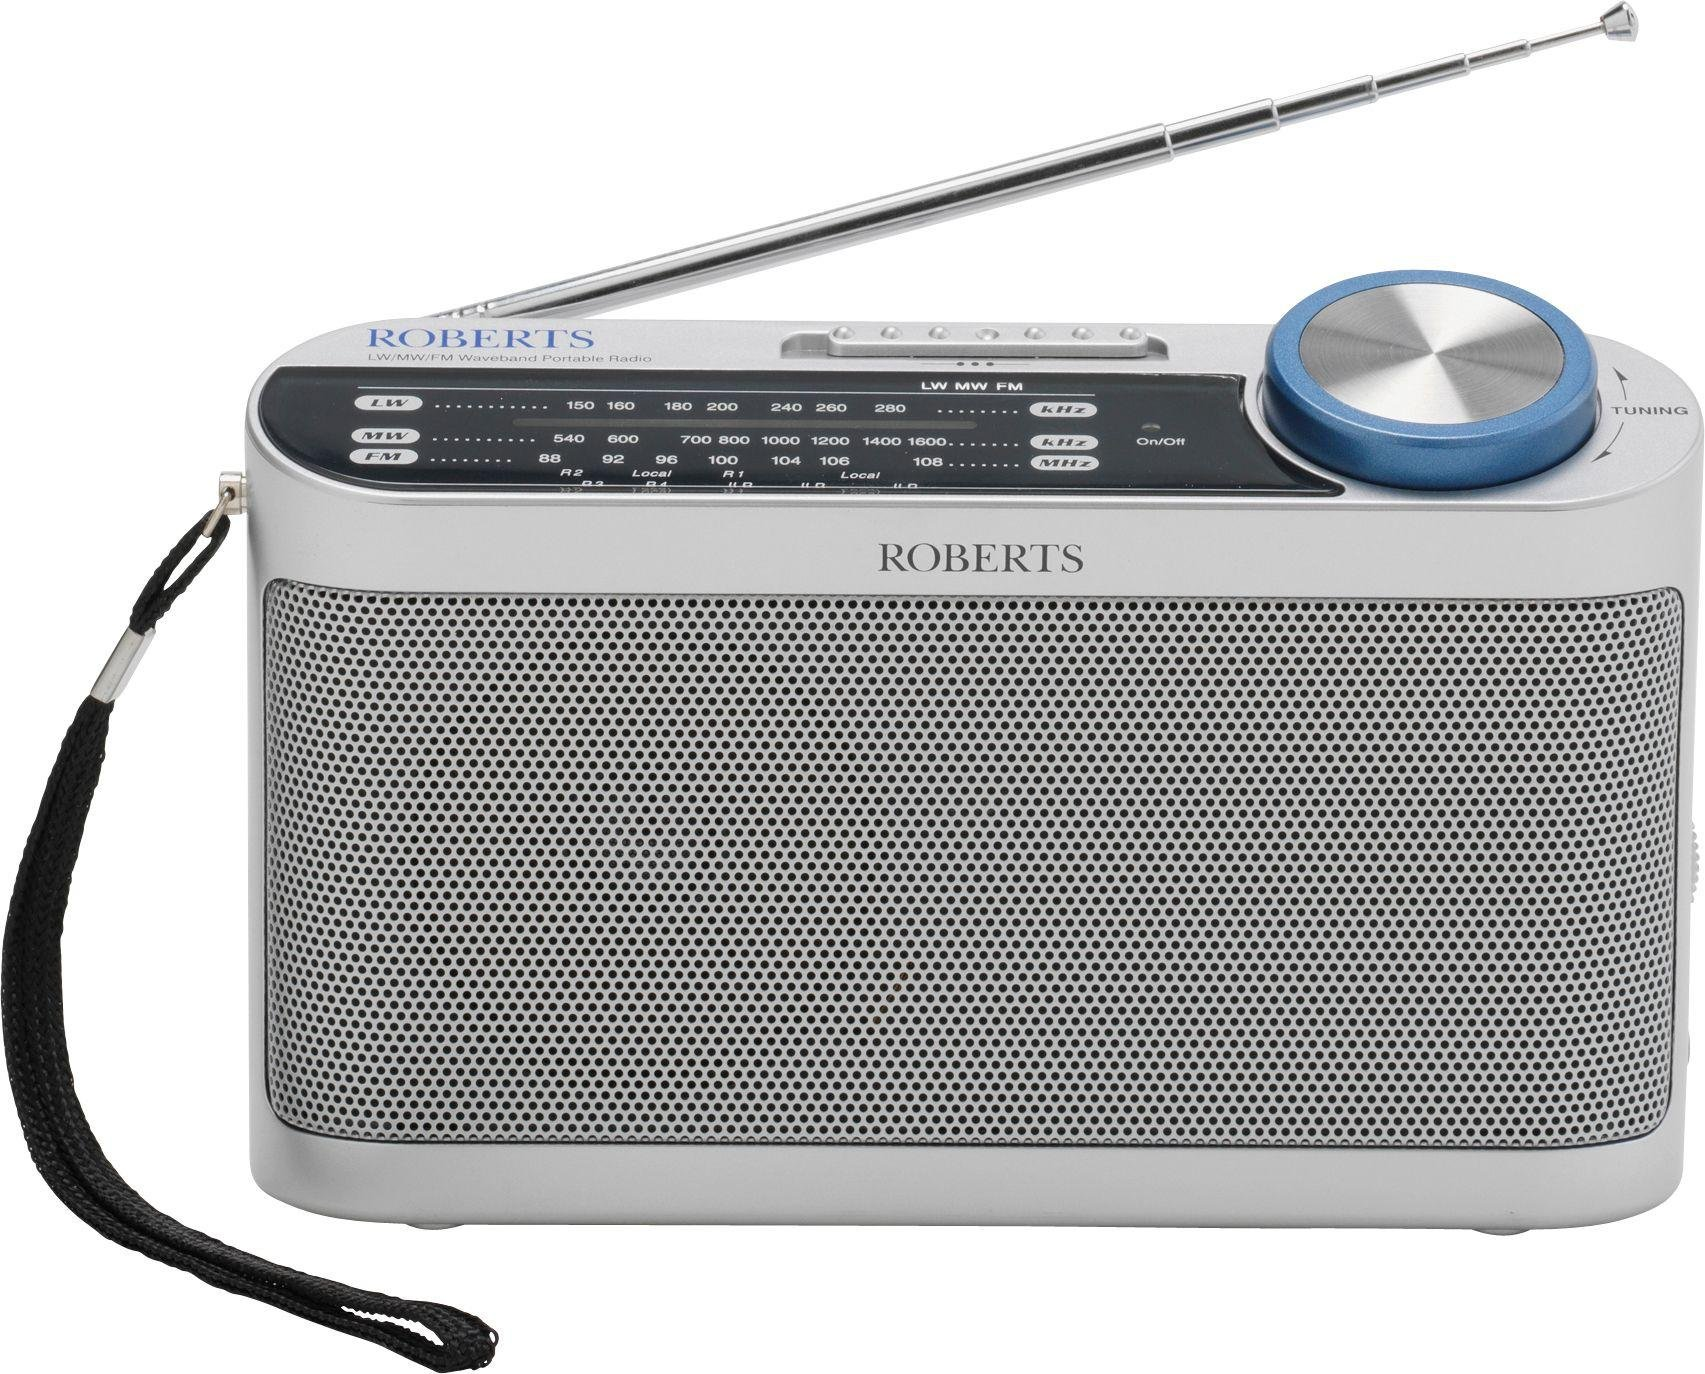 Roberts - Portable Radio - Silver from Roberts